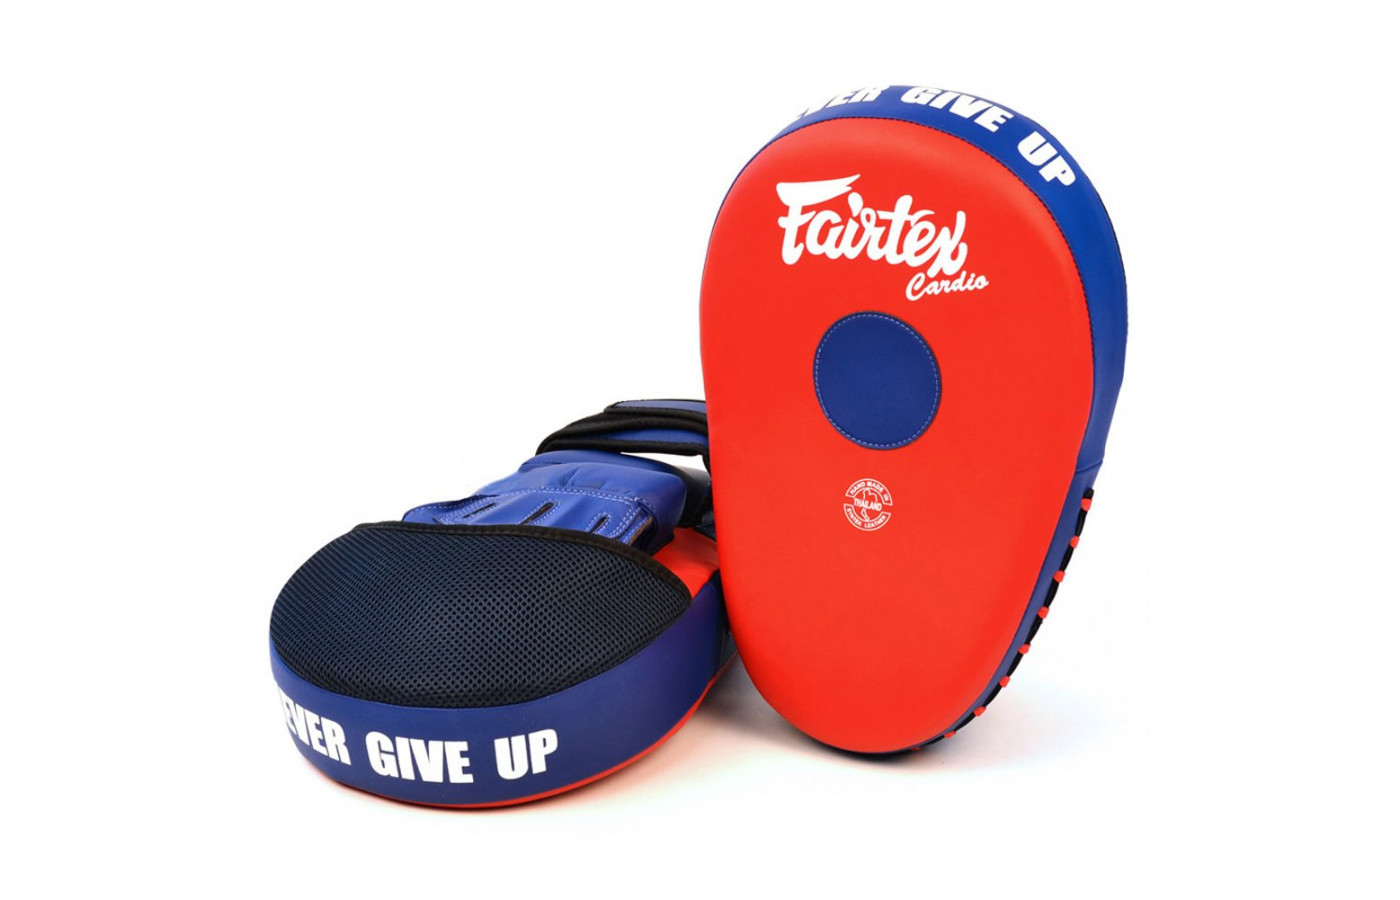 fairtex cardio mitts pair